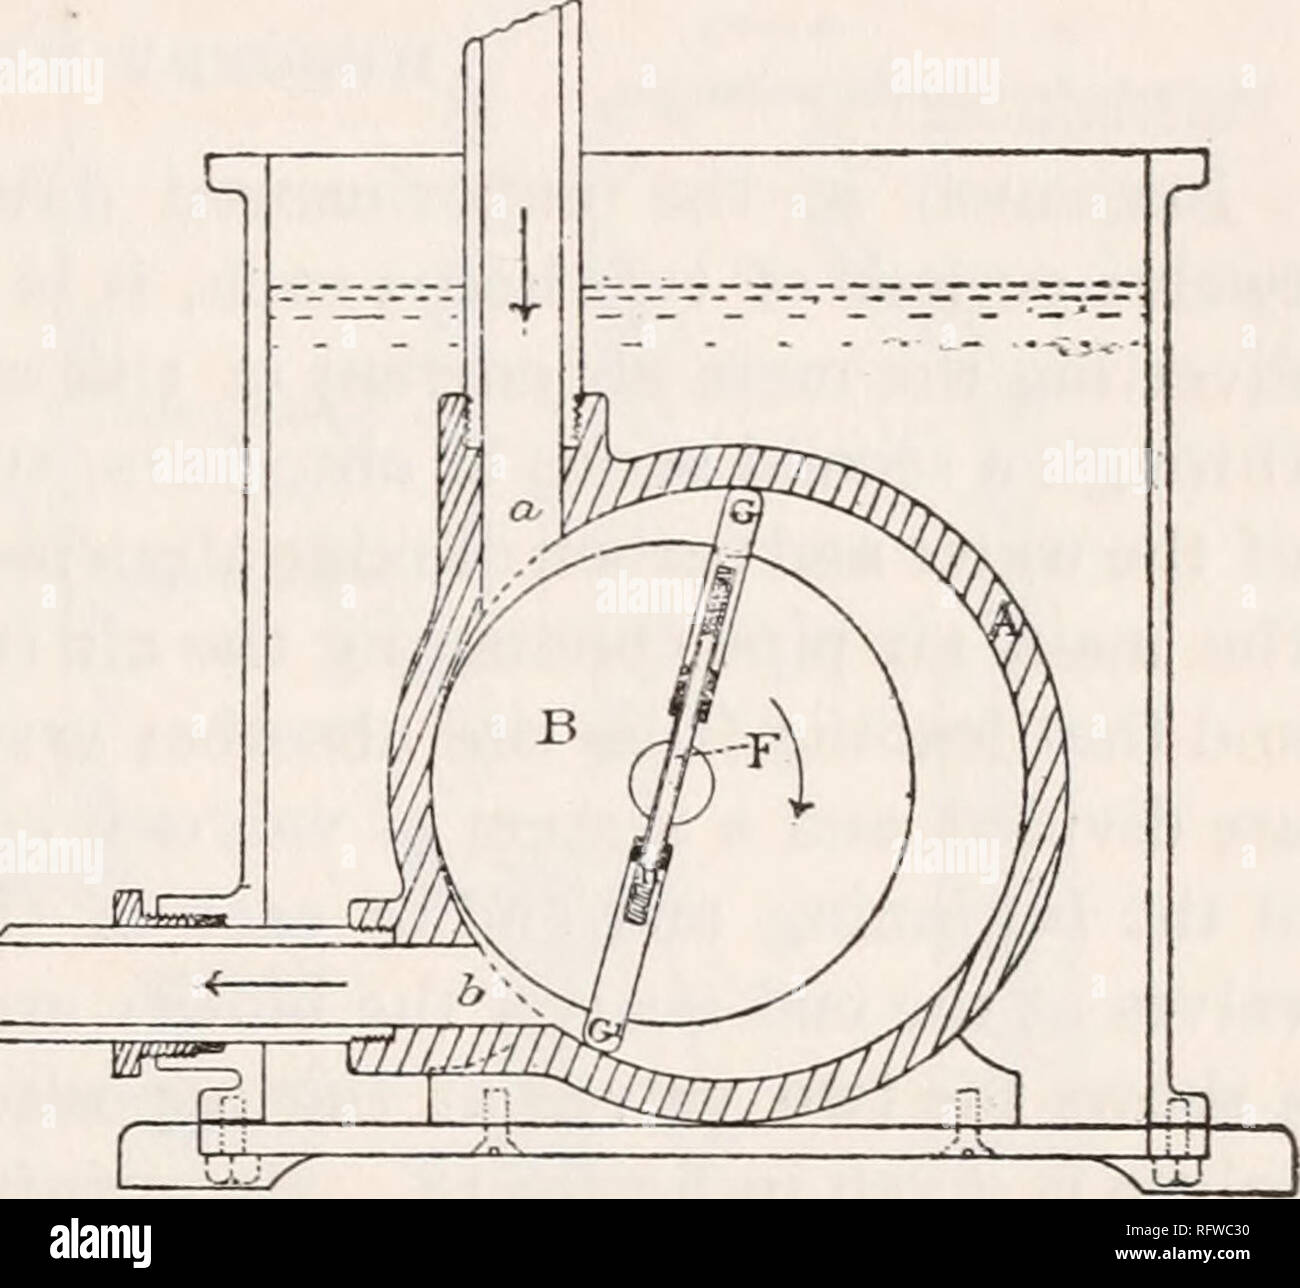 . Carnegie Institution of Washington publication. THE RESPIRATION APPARATUS. The blower consists of a cylinder A, perforated laterally by the open- ings a and b for the entrance and exit of the air current. Inside the cylinder and arranged eccentrically with it is a revolving drum B, bearing on its axis the rod F which carries at each end a piston, G and Gl. The piston G has a tight connection with the rod, while G1 is cushioned on the springs H. As the drum B is revolved the rod slides so that the pistons press against the inner face of the cylinder and prevent a backward escape of air, and t - Stock Image